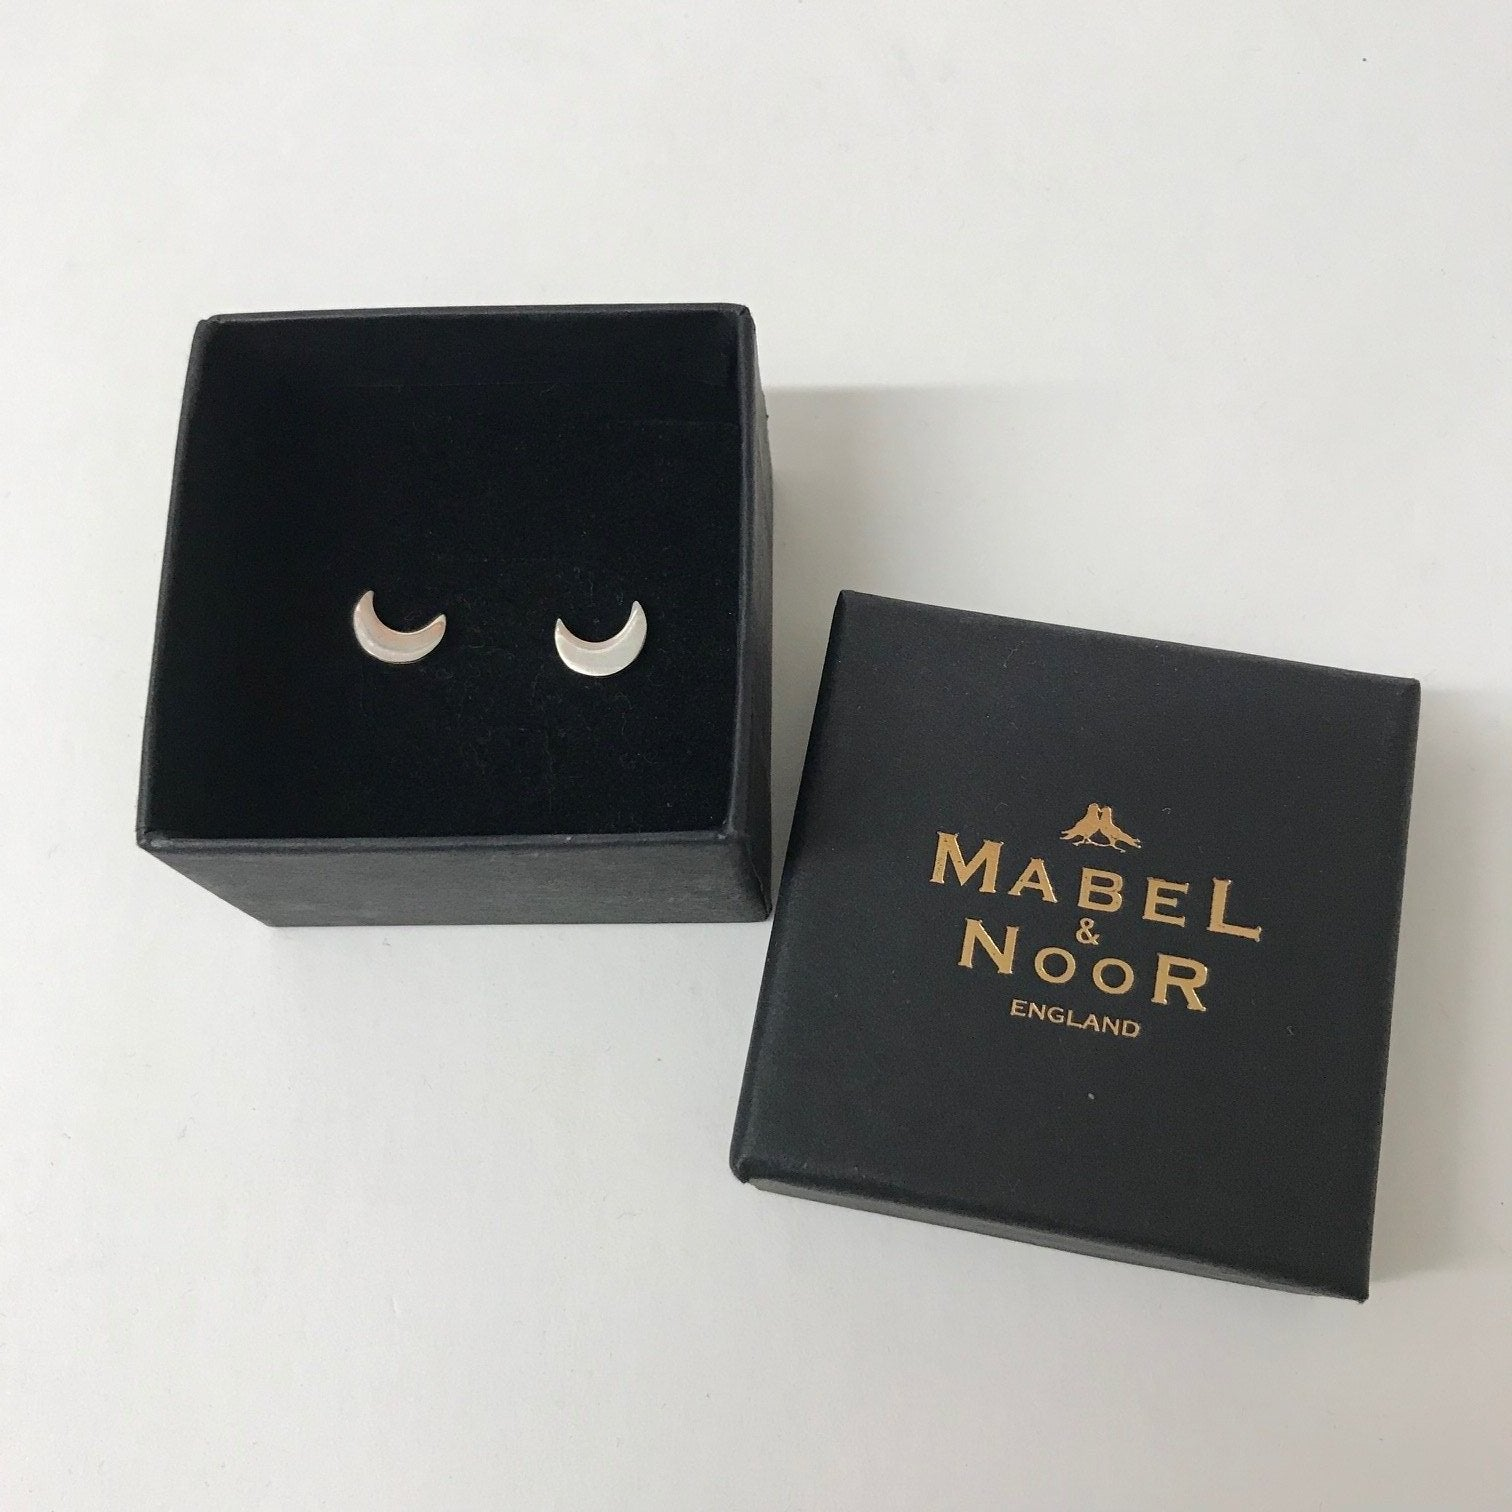 Mabel & Noor Silver Jewellery - Silver Half-Moon Stud Earrings